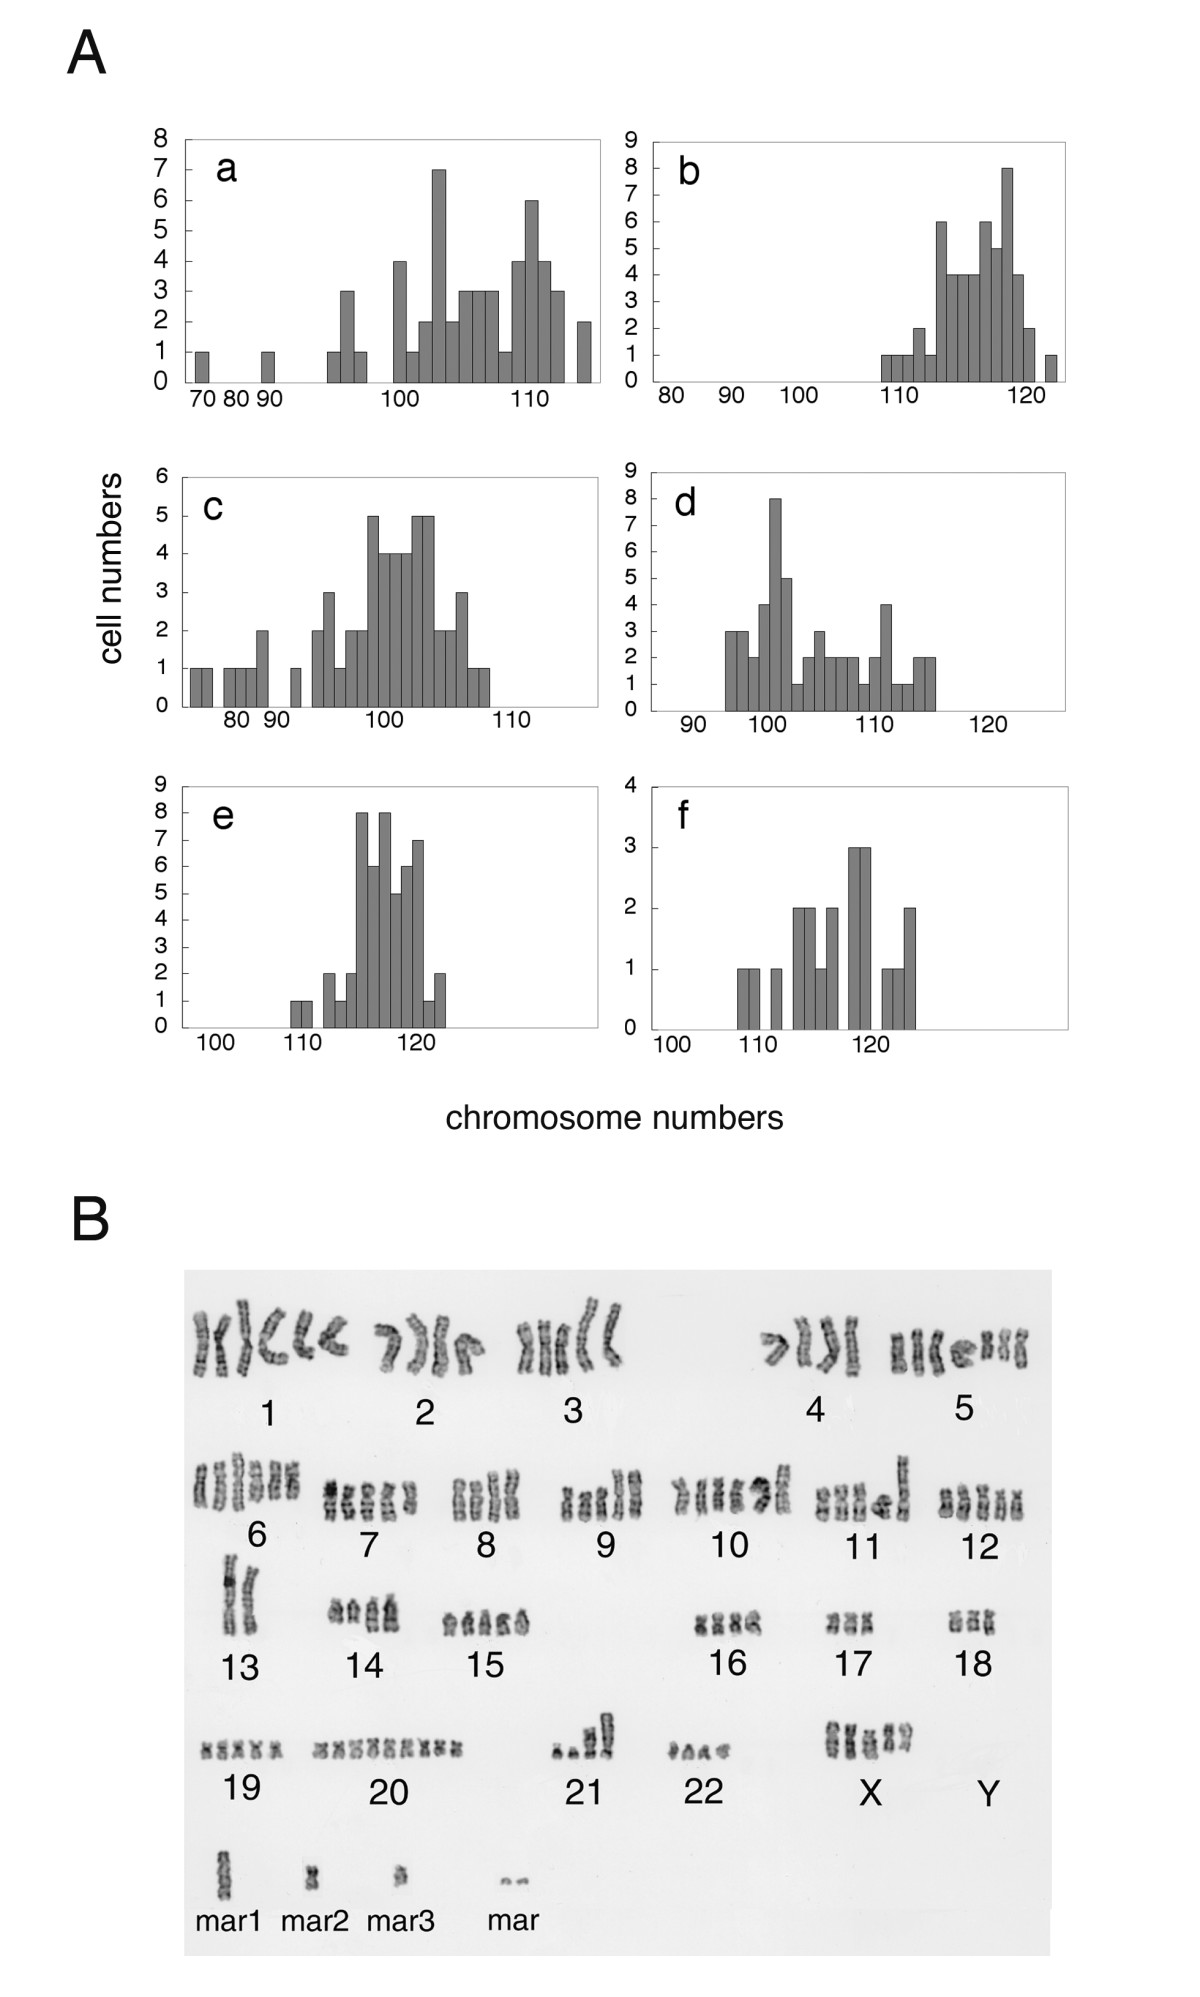 http://static-content.springer.com/image/art%3A10.1186%2F1471-2407-9-247/MediaObjects/12885_2008_Article_1581_Fig3_HTML.jpg